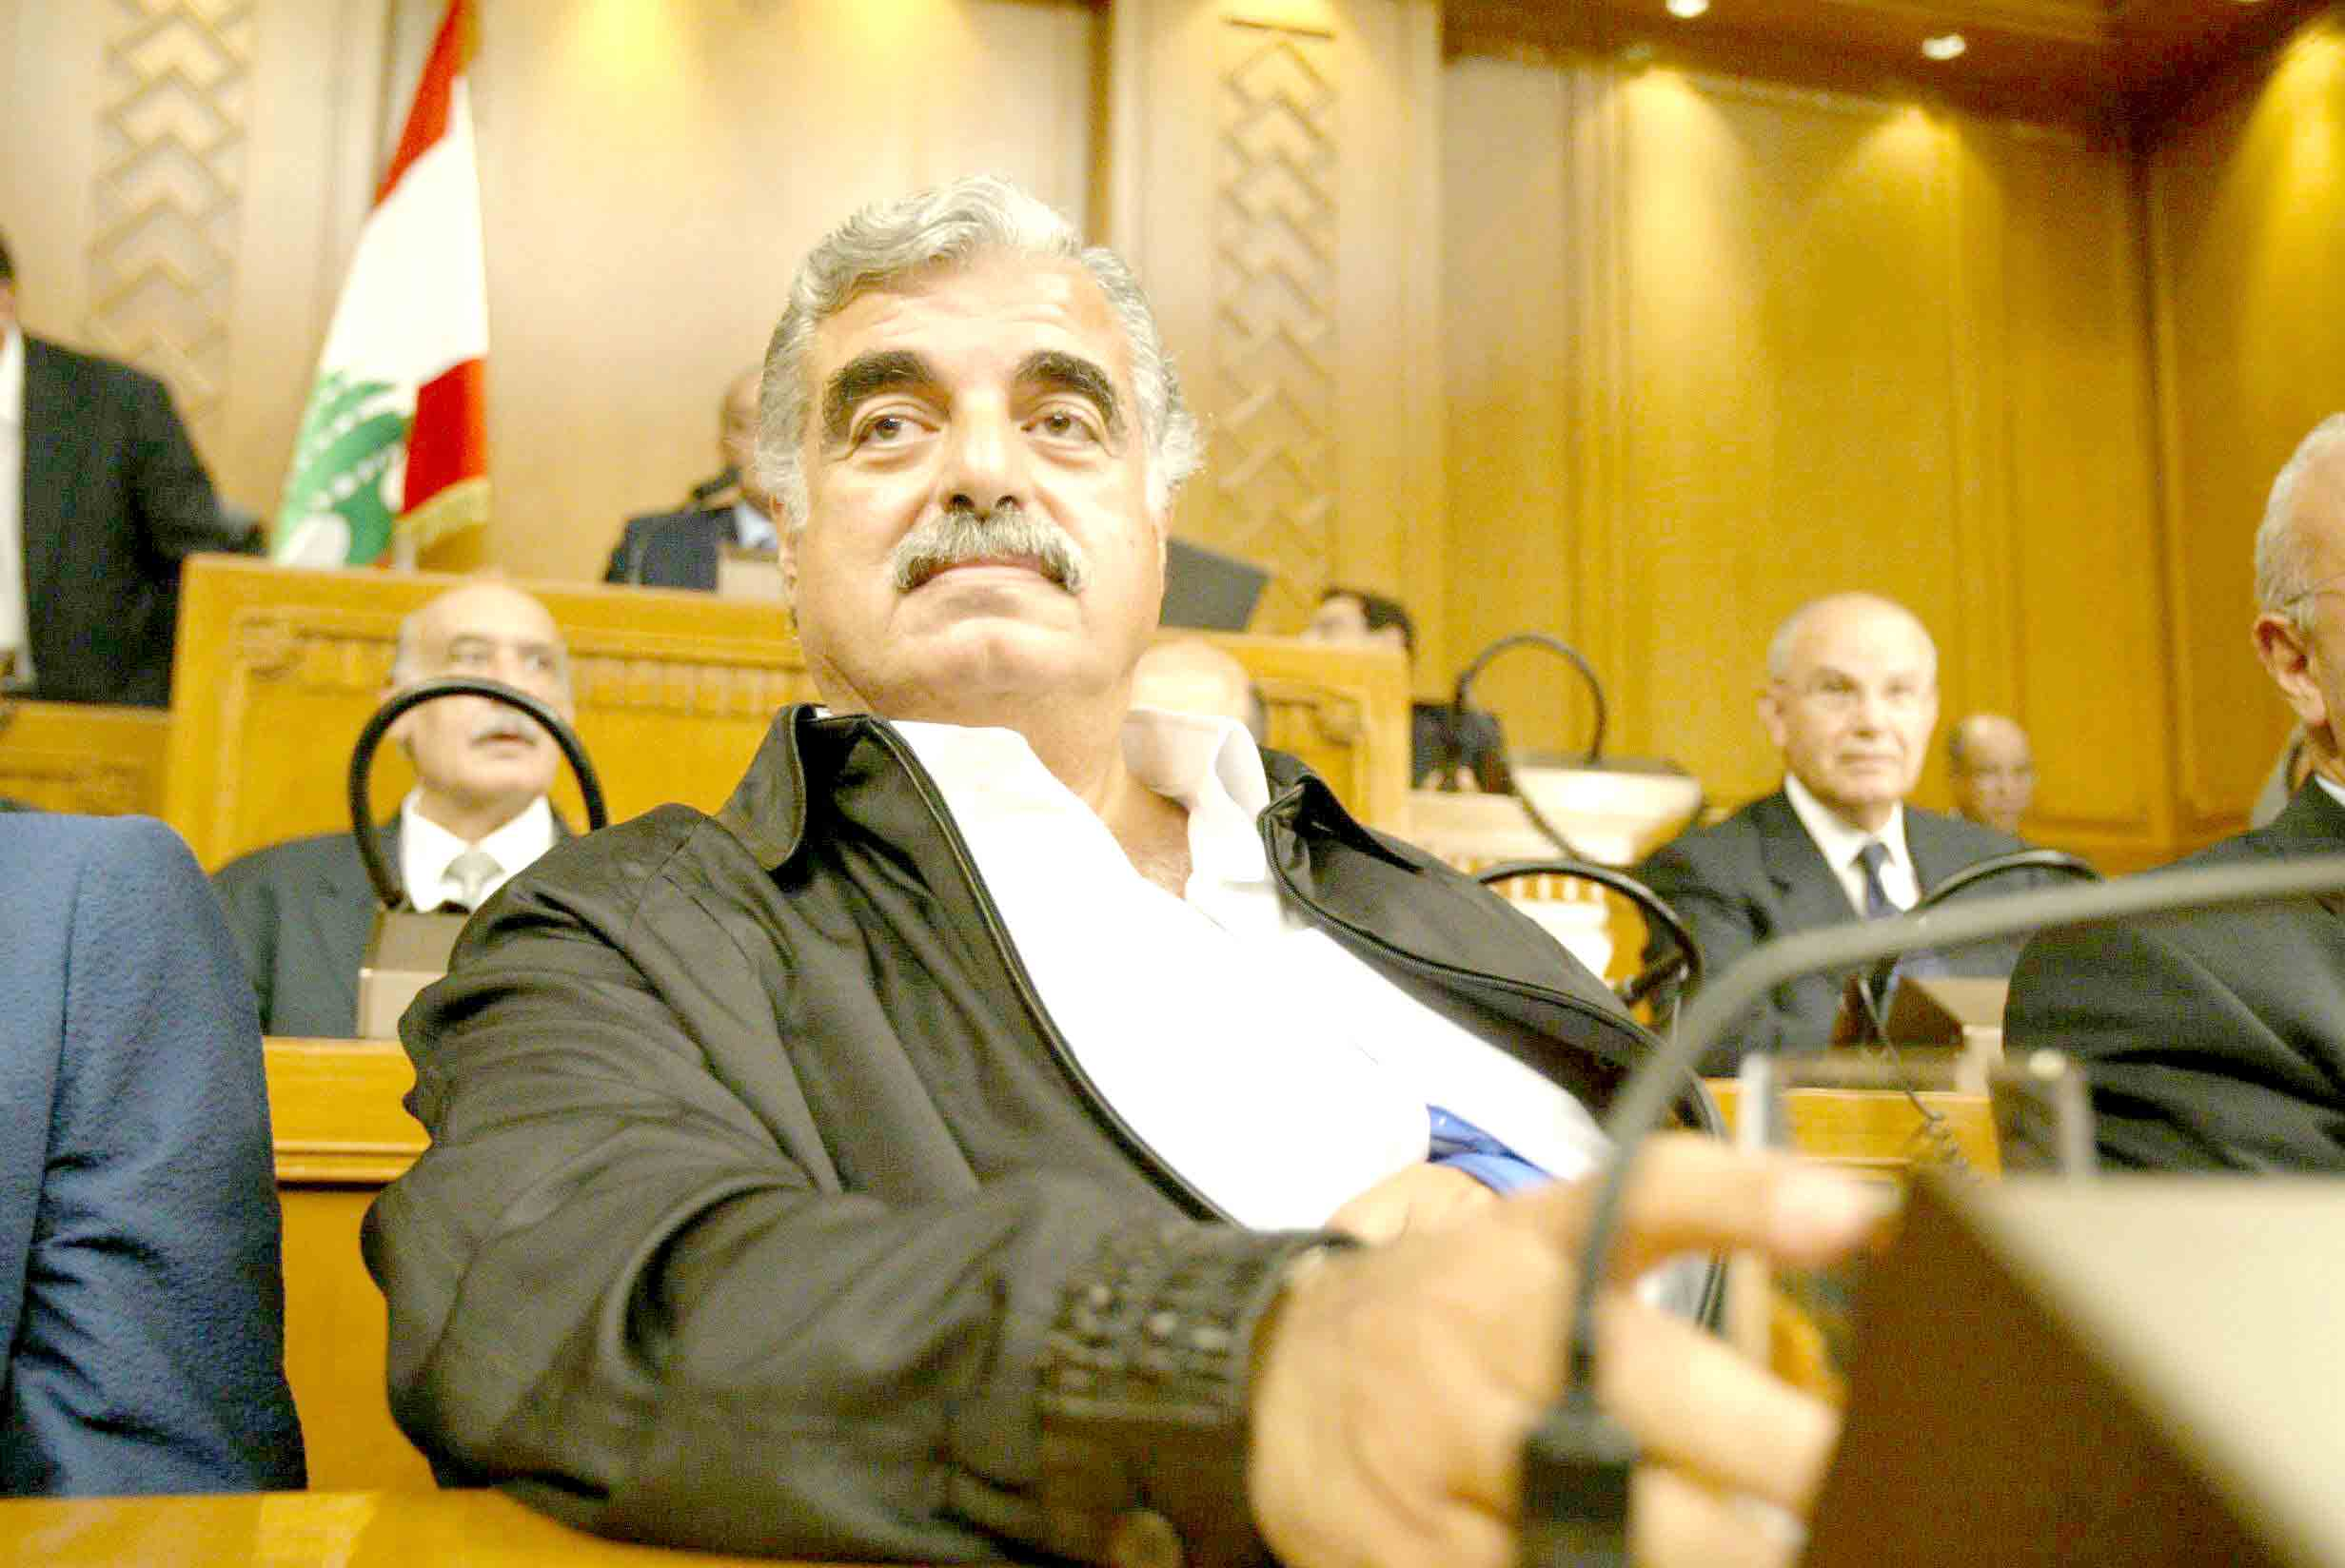 Lebanese Prime Minister Rafik Hariri attends a parliamentary session in Beirut, September 2004. (AFP)